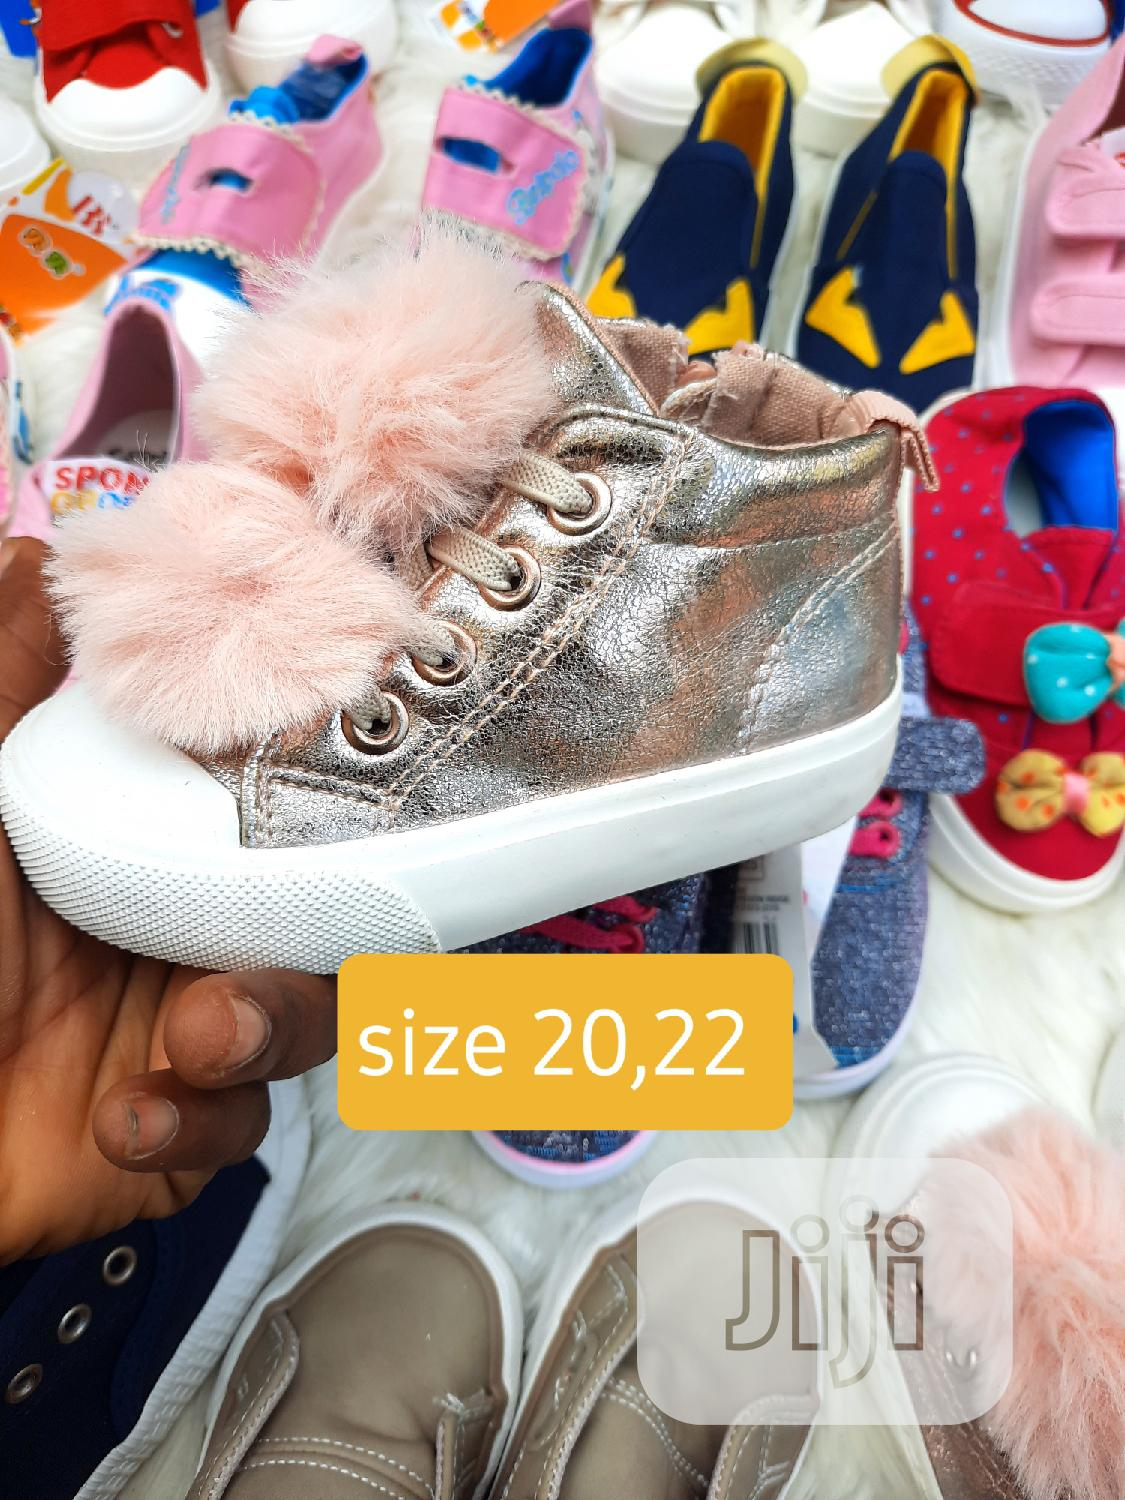 Archive: Brand New Kiddies Sneakers in Size 20 and 22